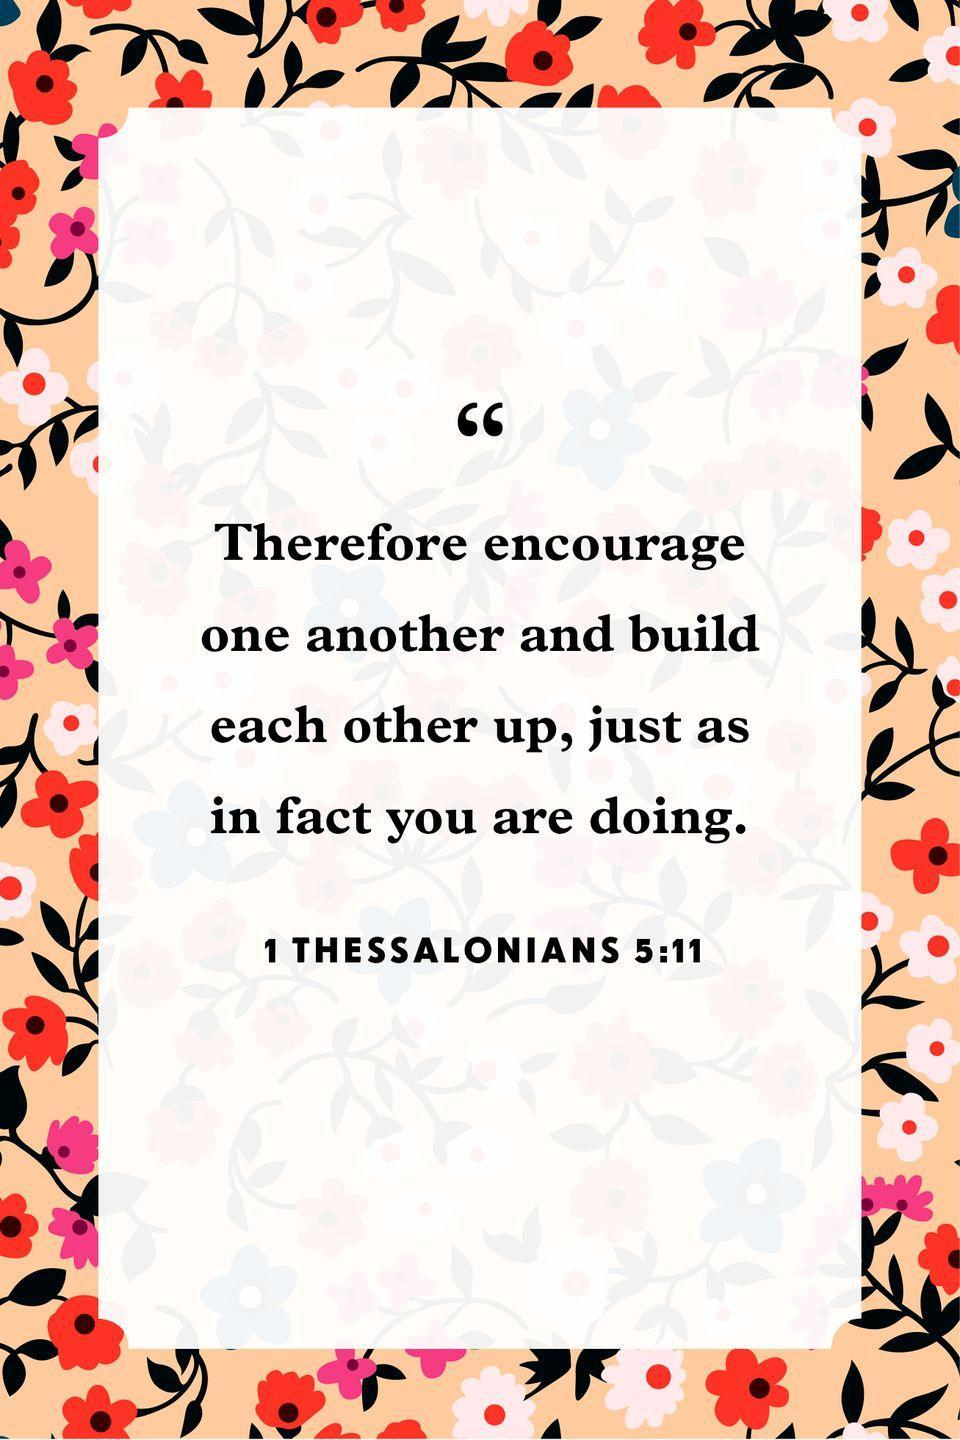 "<p>""Therefore encourage one another and build each other up, just as in fact you are doing.""</p>"